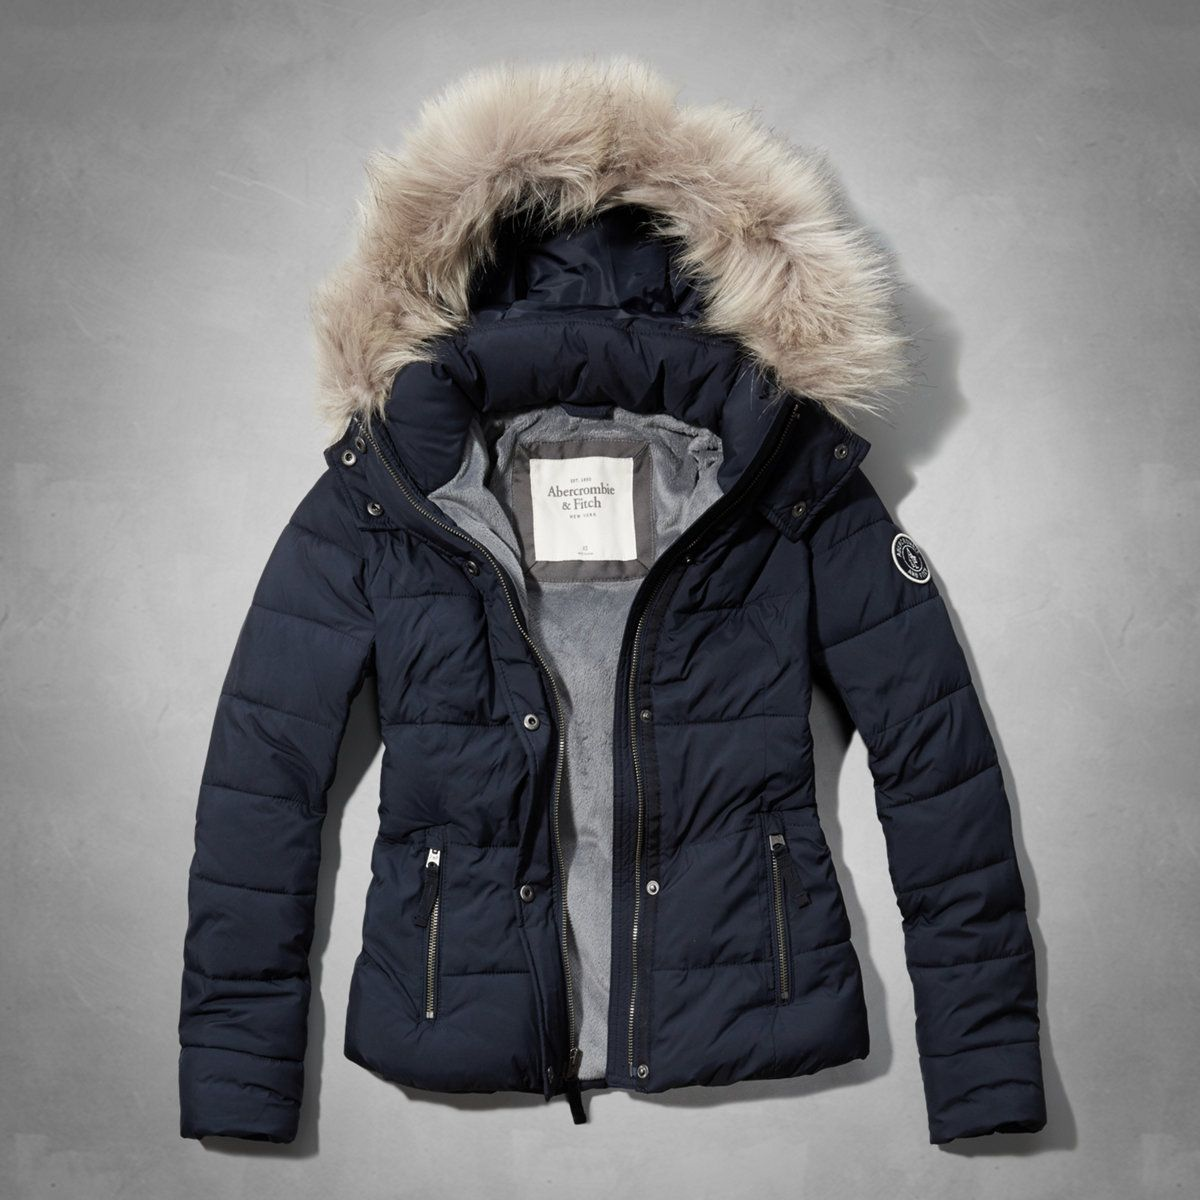 Reversible Bomber Jacket | Puffer jackets, Abercrombie fitch and Navy